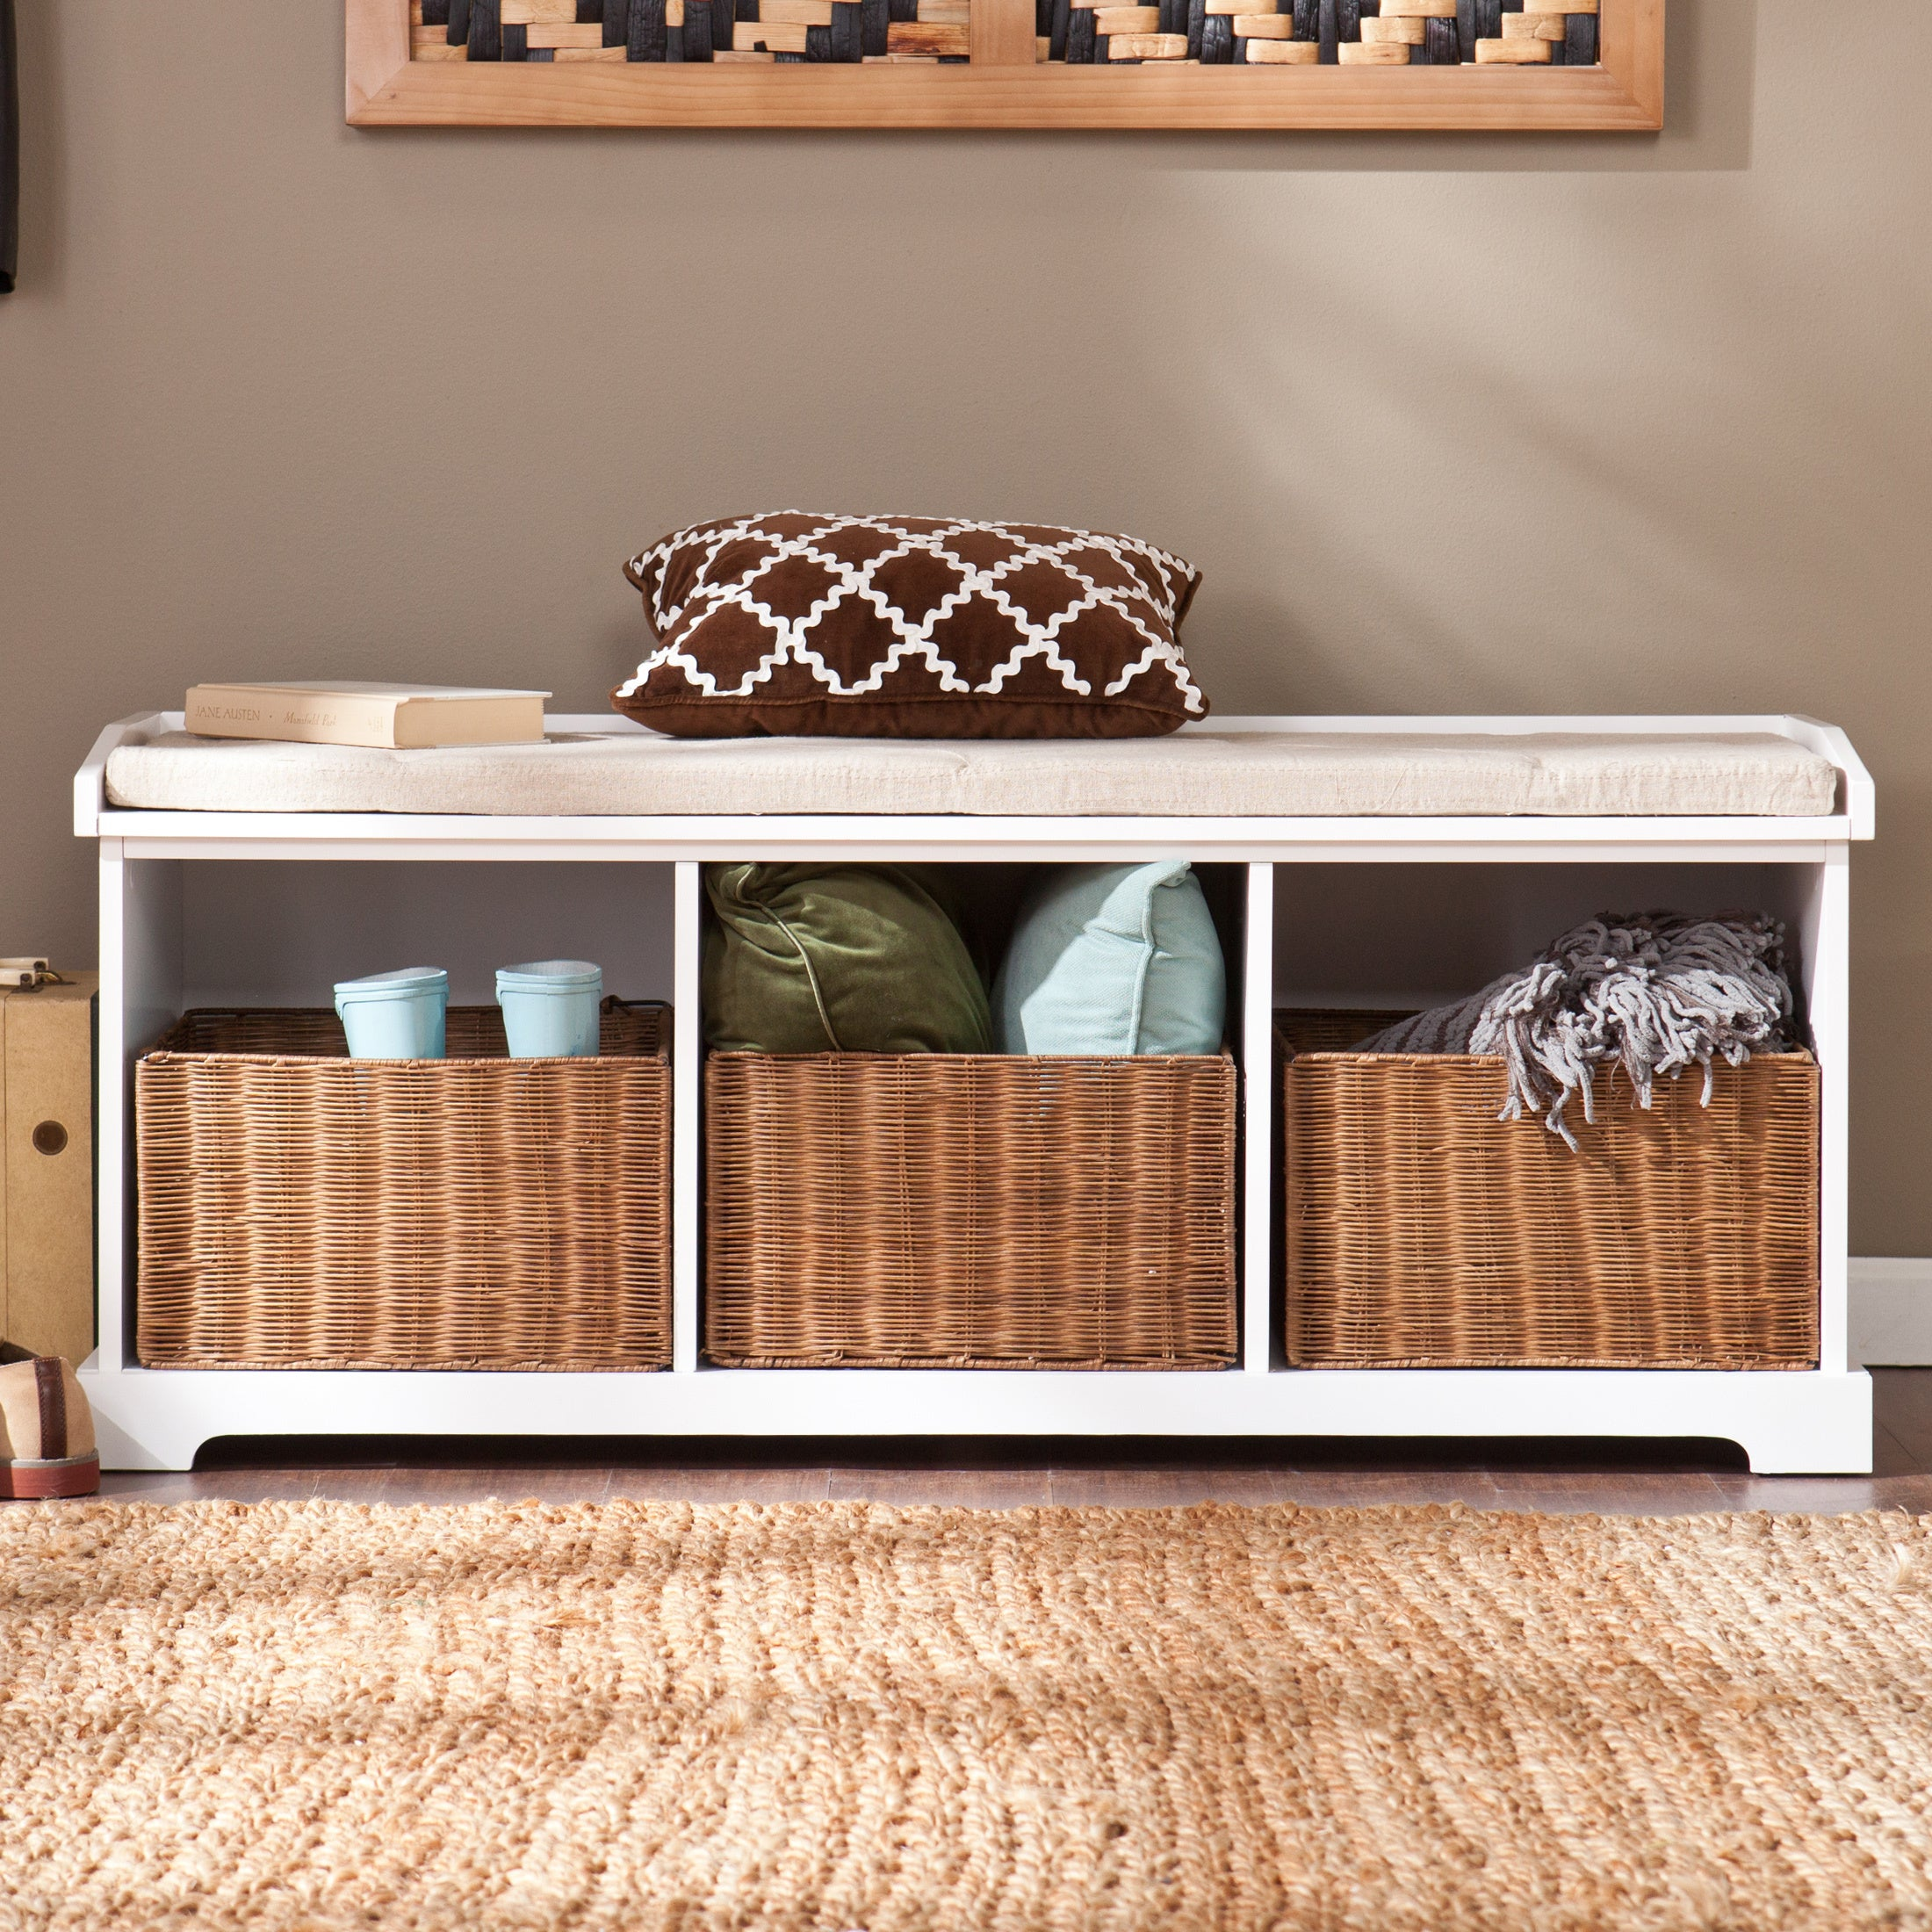 Groovy The Gray Barn Brookside White Entryway Storage Bench Beatyapartments Chair Design Images Beatyapartmentscom